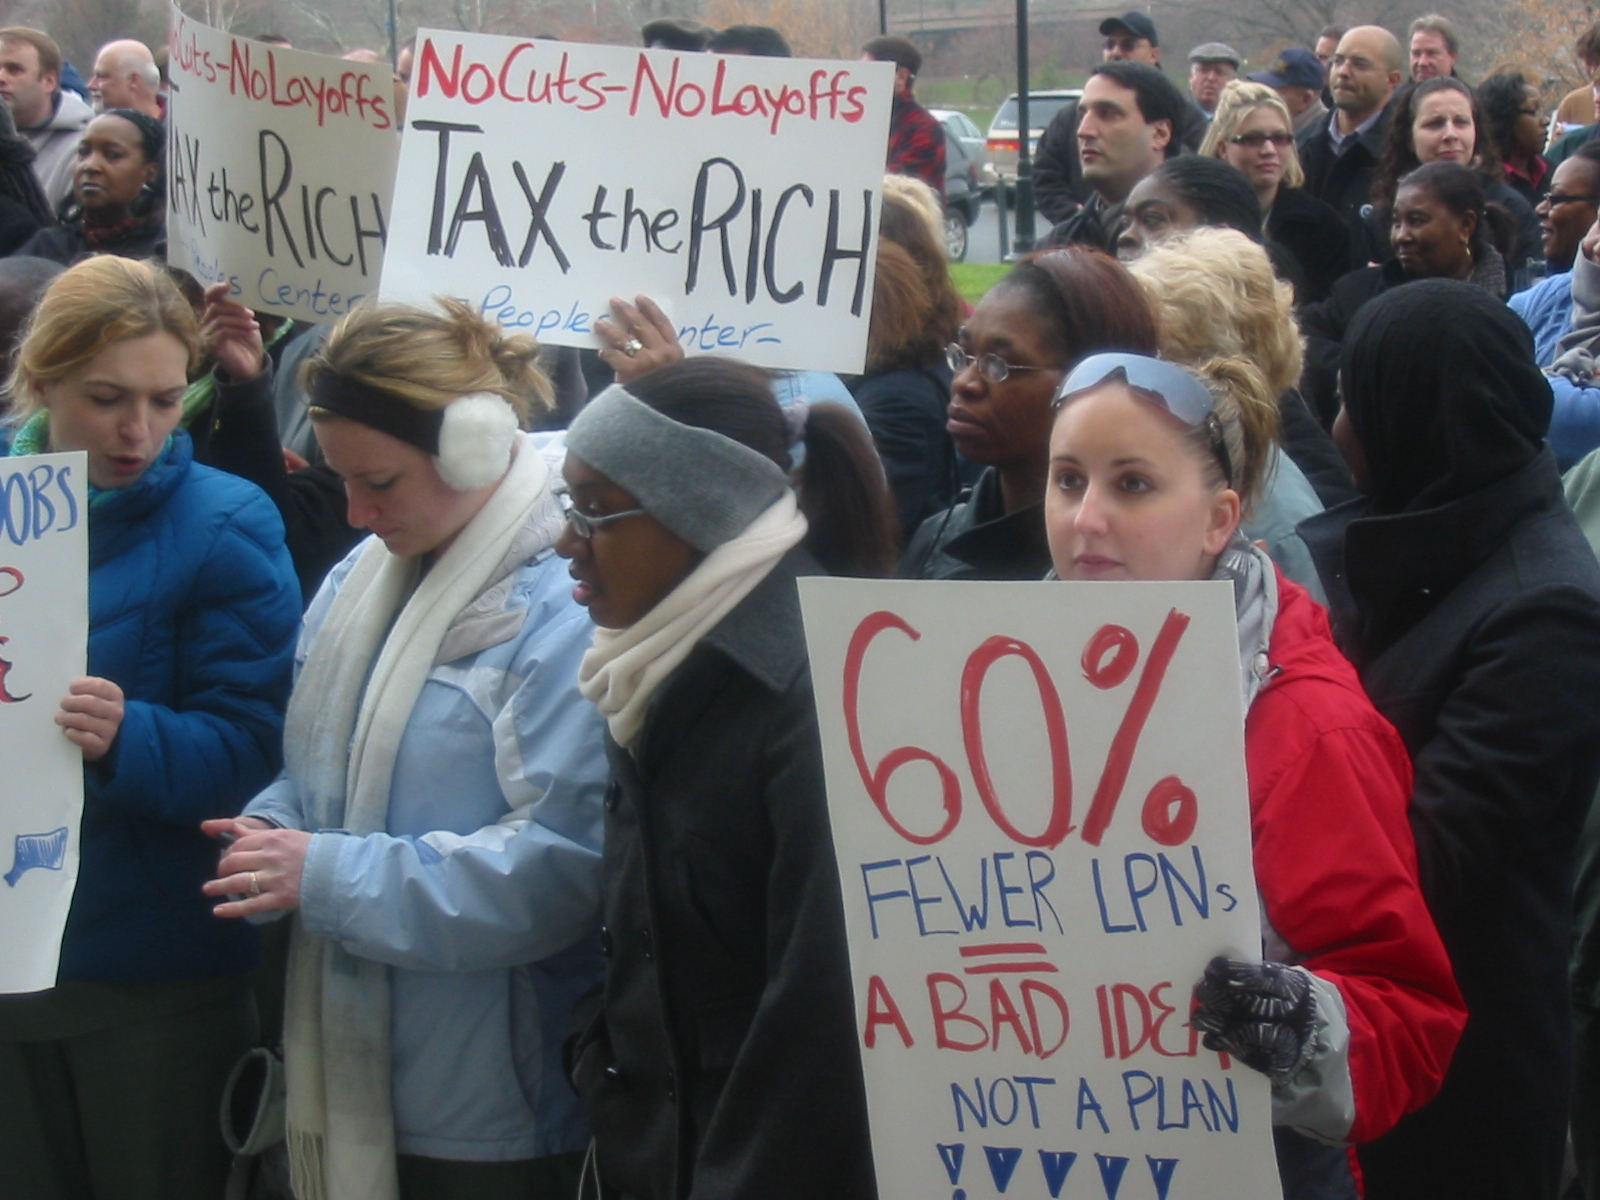 To fix Connecticut's state budget, tax the rich!